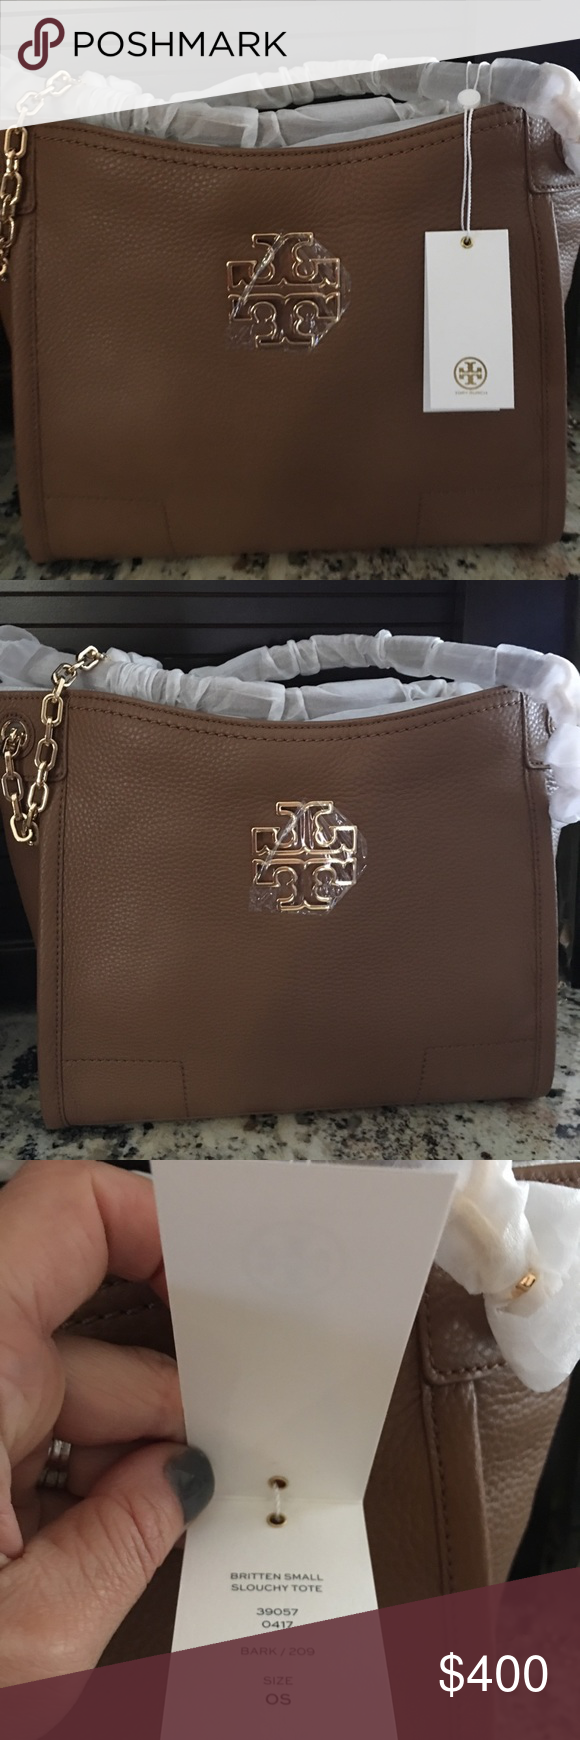 873ed10ee7ca NEW Tory Burch Britten Tote! 100% Authentic Brand new with tags Tory Burch  leather